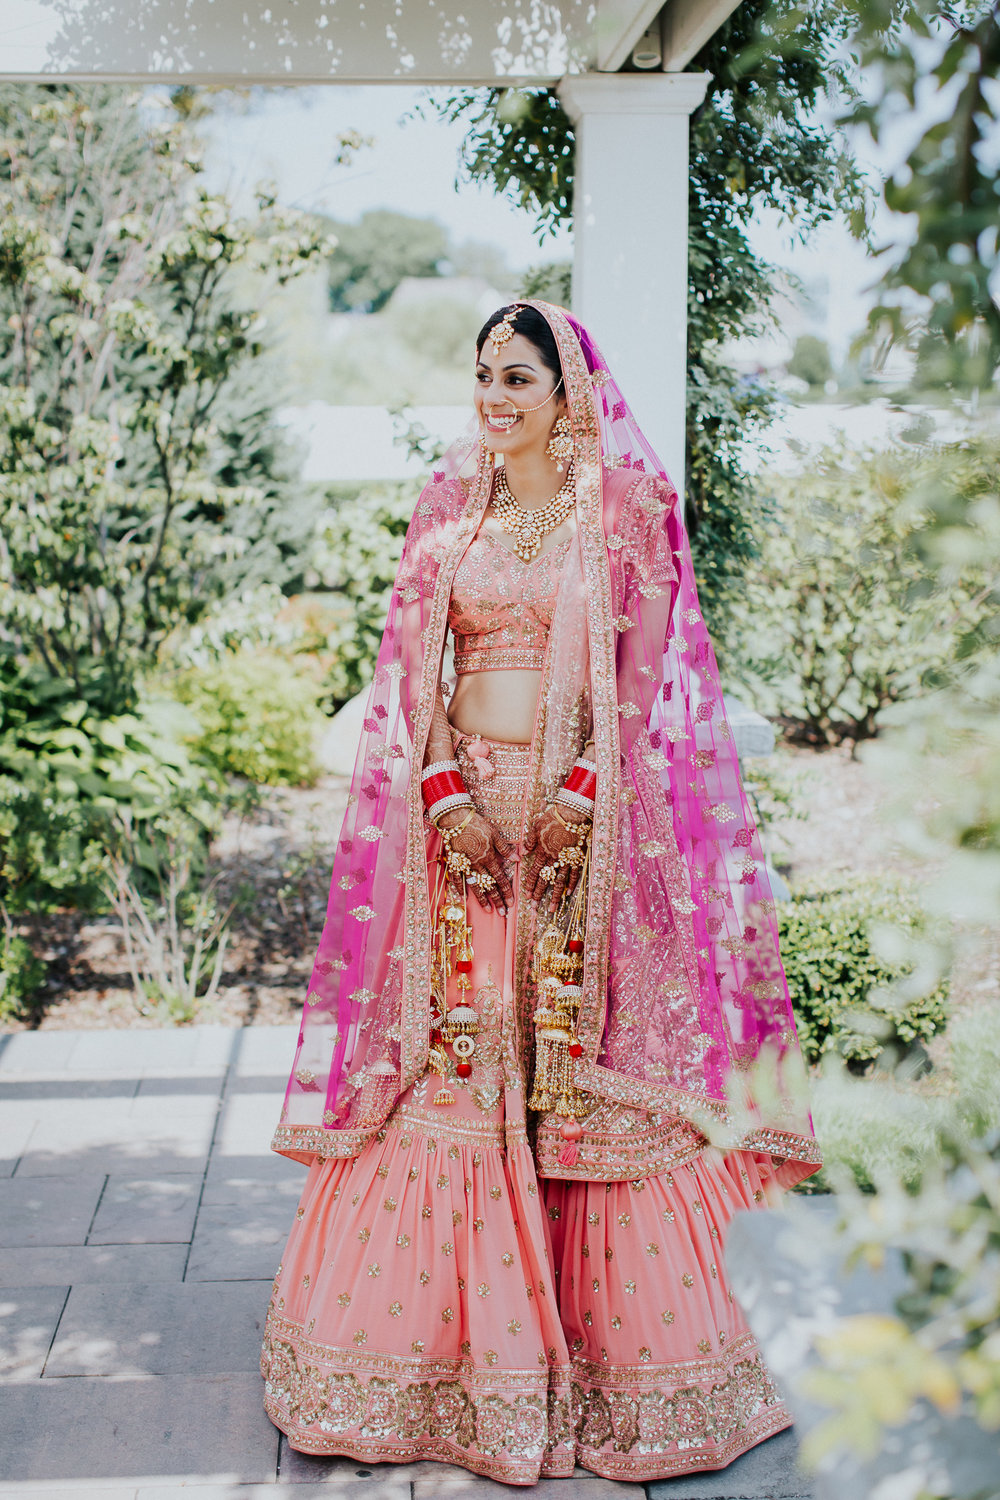 Nadiya-Sherief-Green-Tree-Country-Club-Indian-New-York-Documentary-Wedding-Photographer-34.jpg